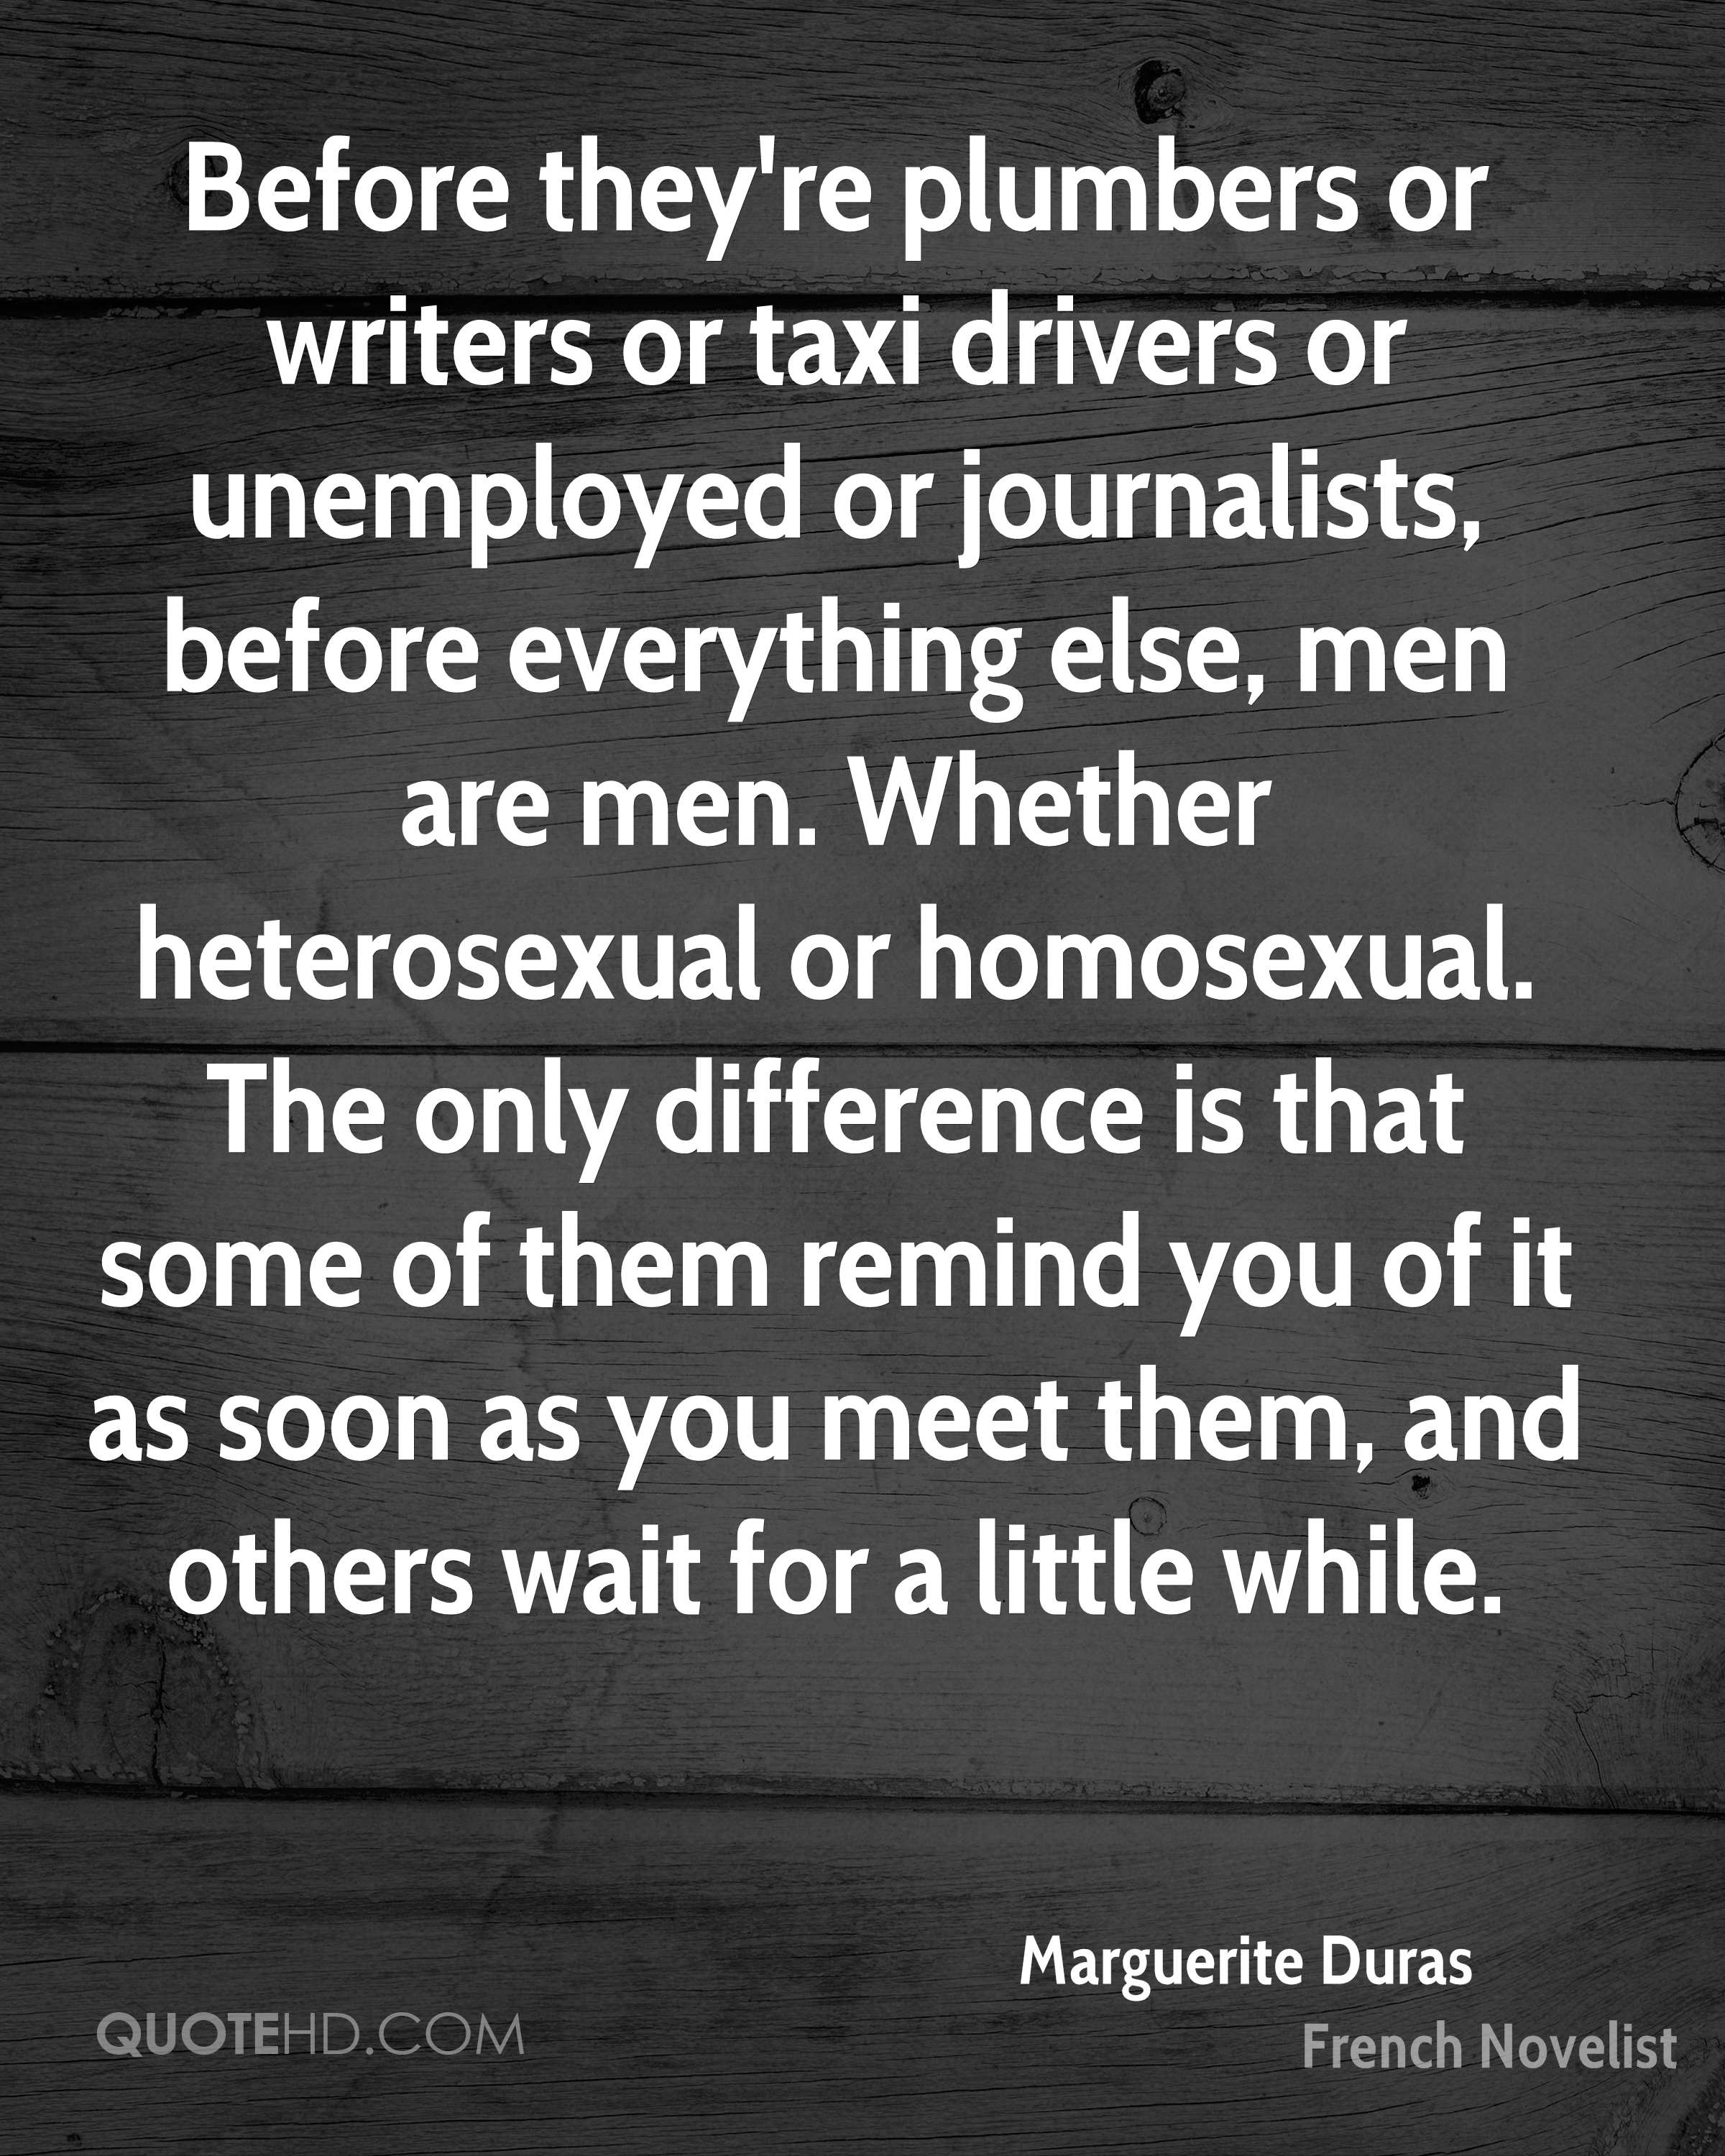 Before they're plumbers or writers or taxi drivers or unemployed or journalists, before everything else, men are men. Whether heterosexual or homosexual. The only difference is that some of them remind you of it as soon as you meet them, and others wait for a little while.